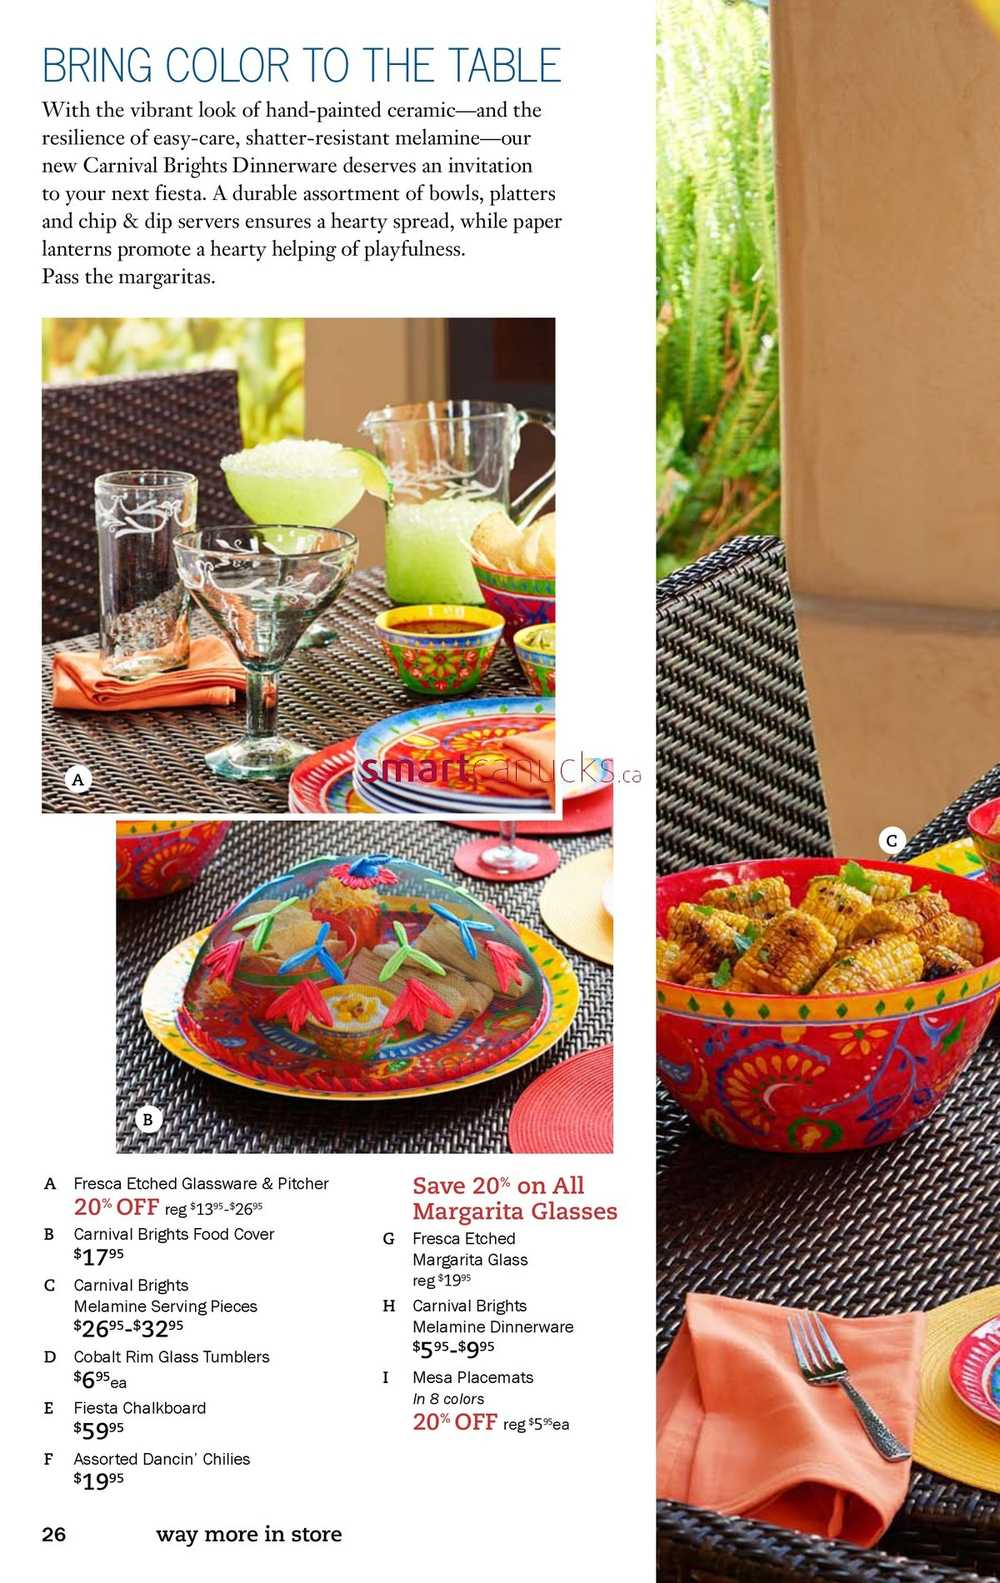 Inspiring, fun, colorful, creative and definitely out of the ordinary, you have a knack for finding just the right furniture, lighting, tableware and decor for your home. And that's just what you find at Pier 1 Imports. Because we search out the world's most gifted artisans, find and develop fashion-forward trends, and handcraft exclusive products with you specifically in mind.